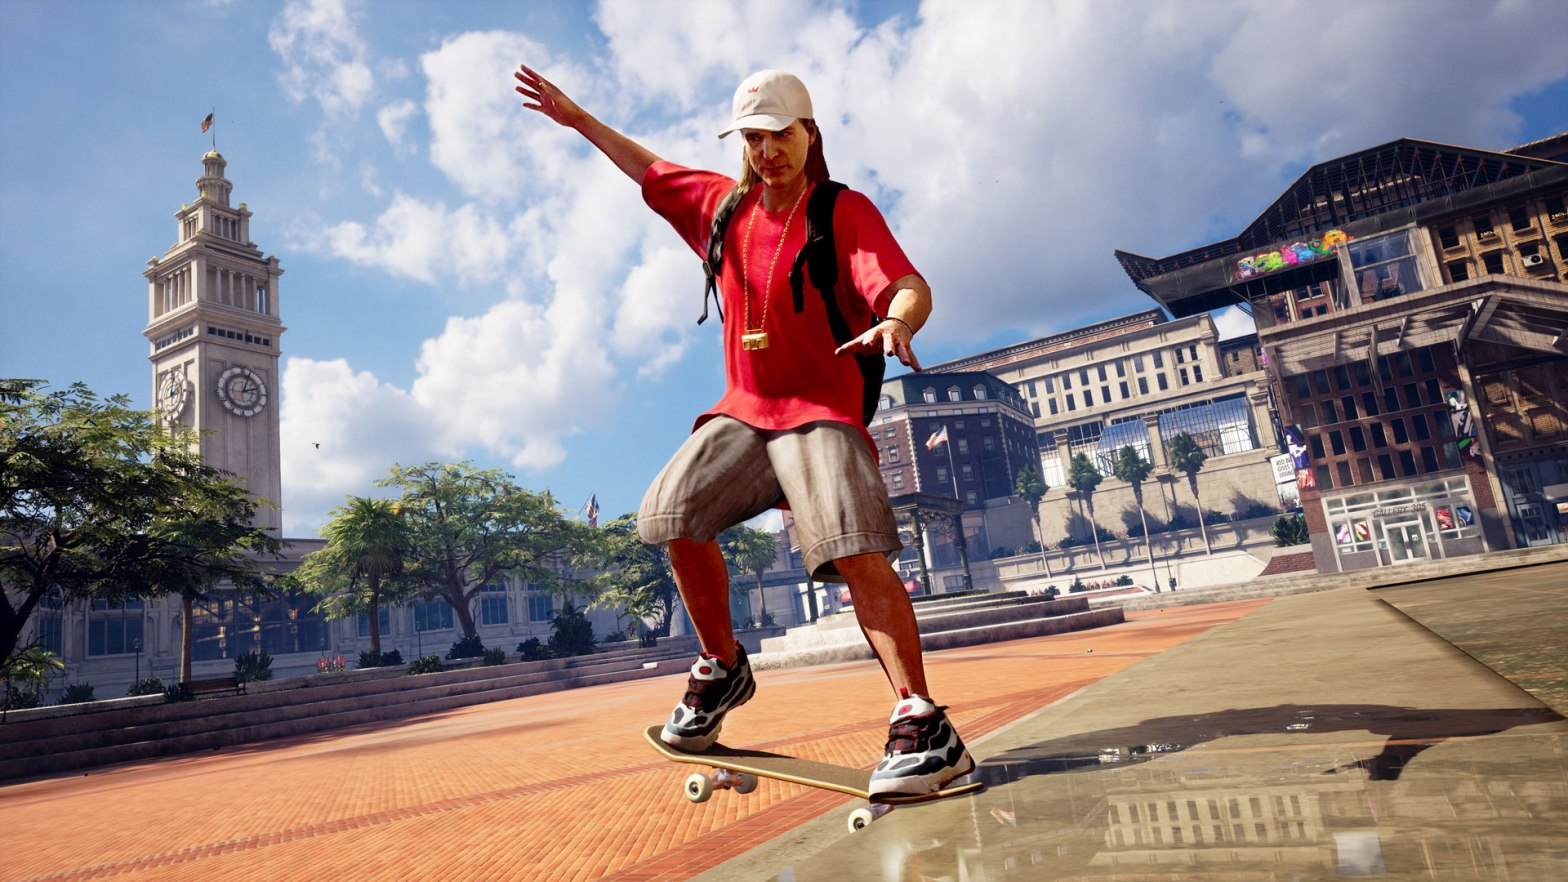 Tony Hawk's Pro Skater 1+2 for Nintendo Switch, PS5 and Xbox Series X|S